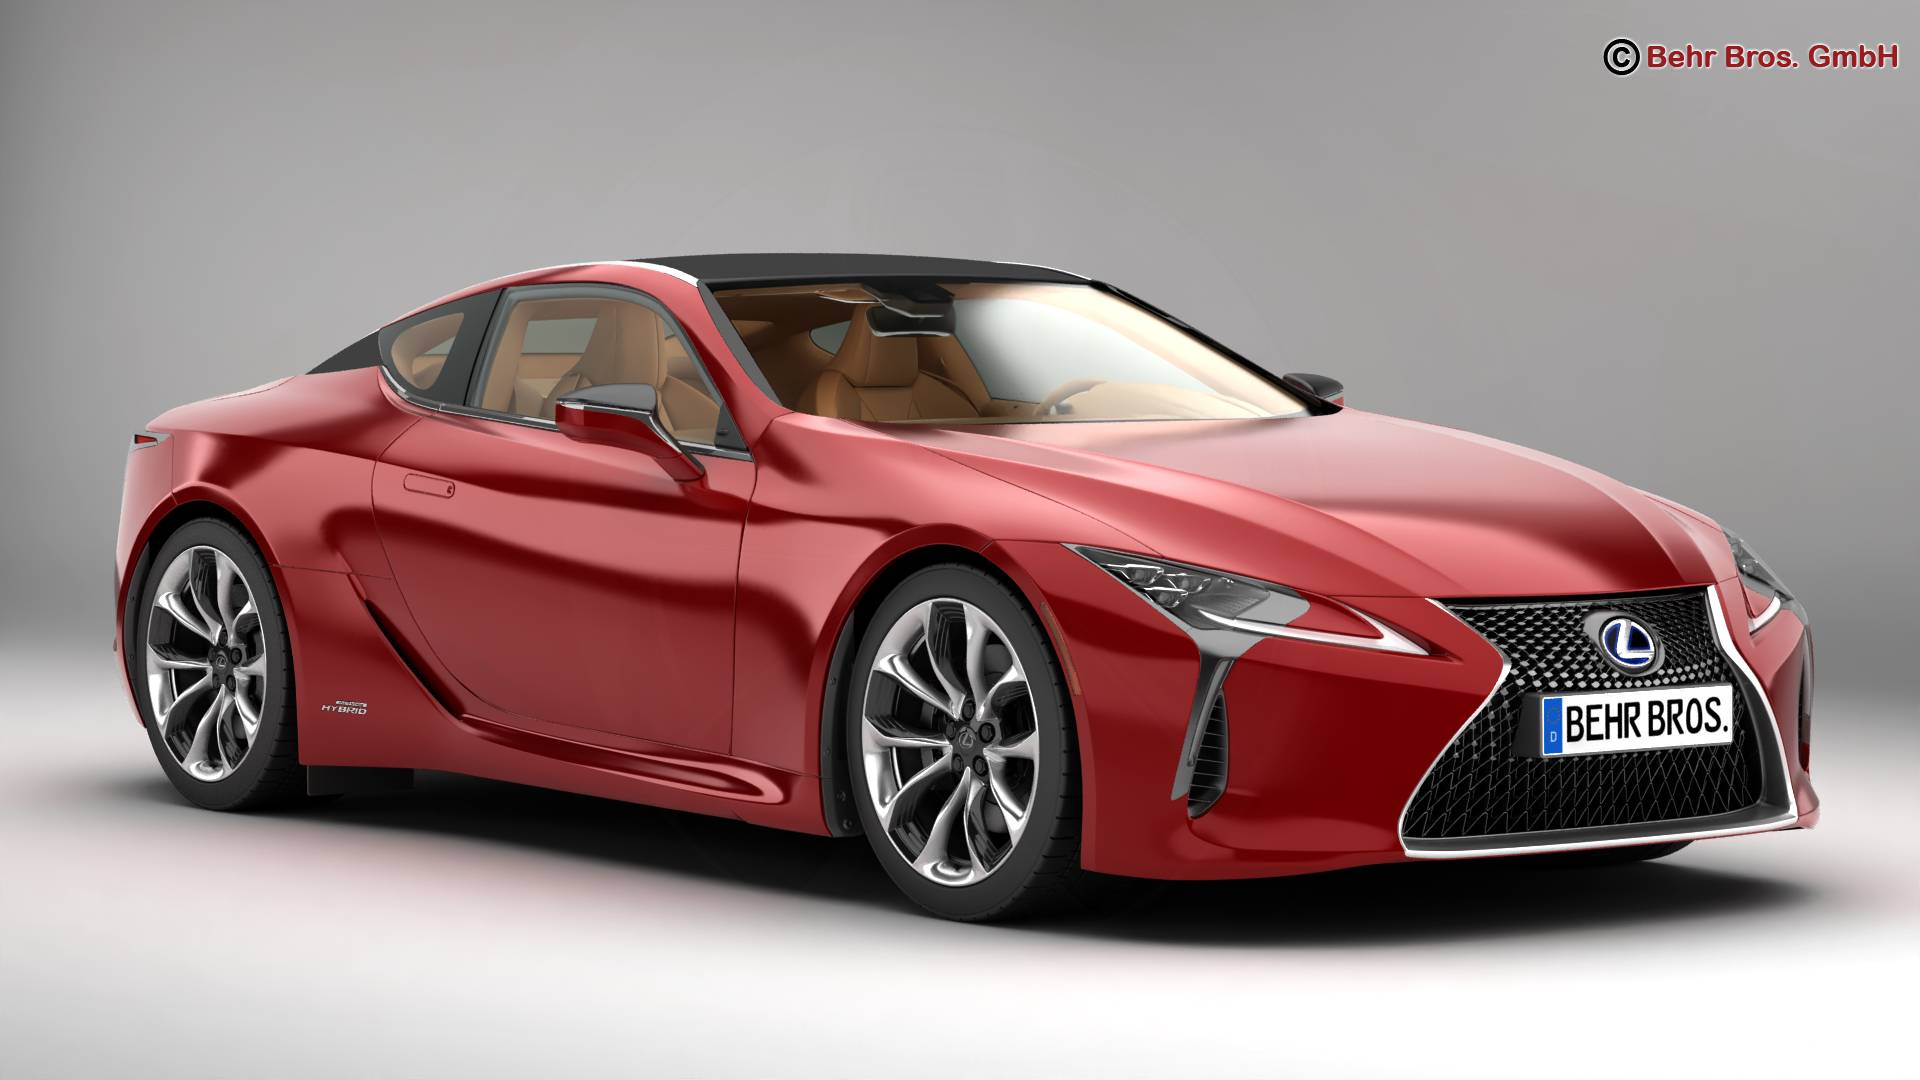 lexus lc 500 us hybrid 2018 3d model buy lexus lc 500 us hybrid 2018 3d model flatpyramid. Black Bedroom Furniture Sets. Home Design Ideas